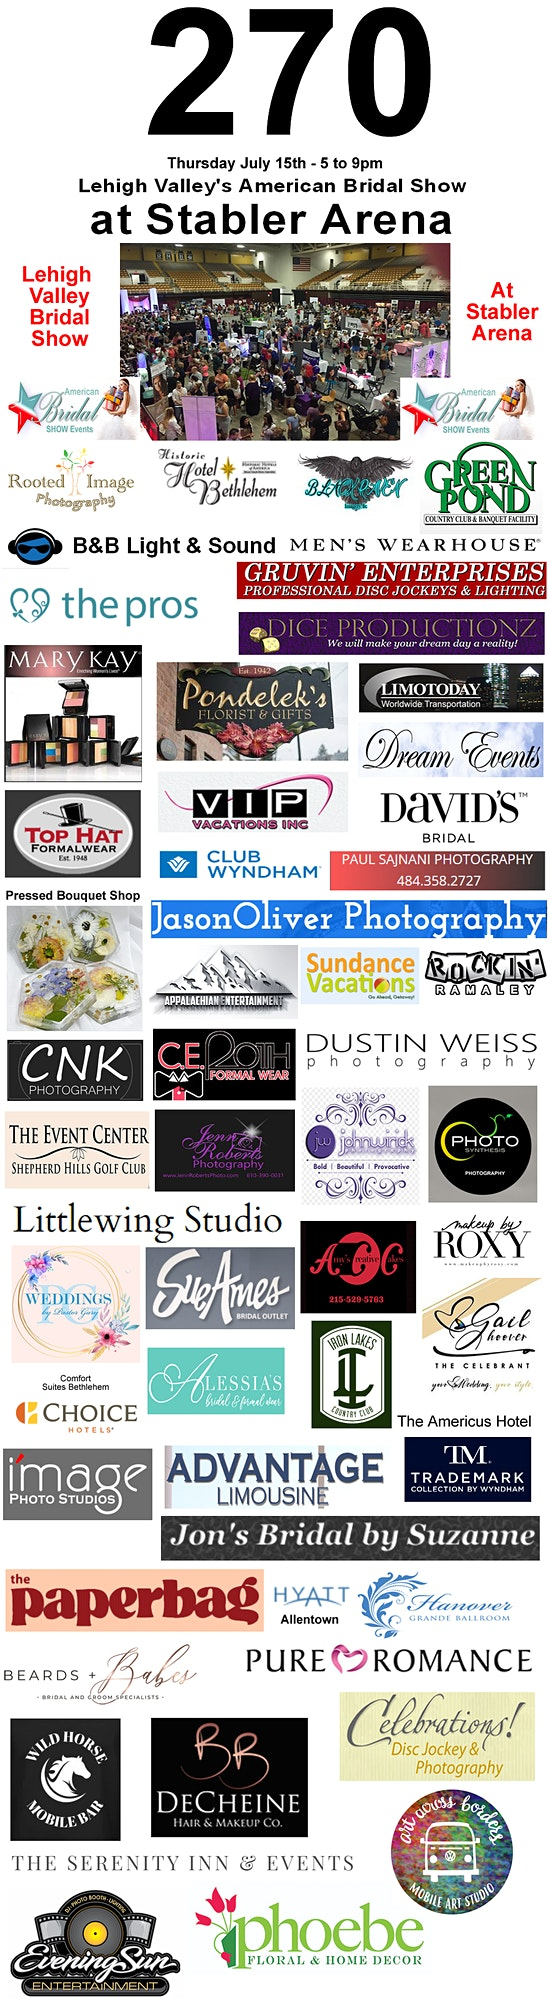 Lehigh Valley's Largest Summer Bridal Show at Stabler Arena image